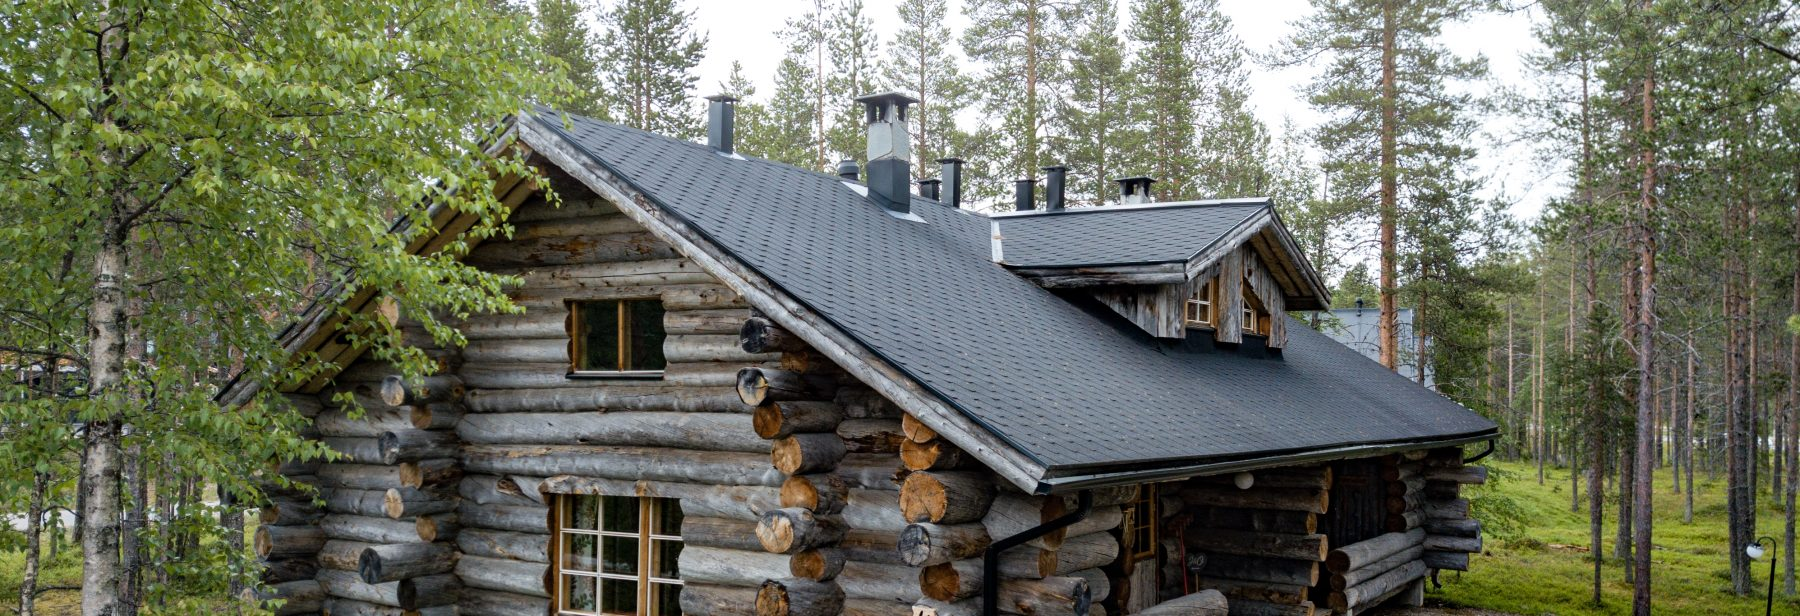 Welcome to Levi Log Cabin!